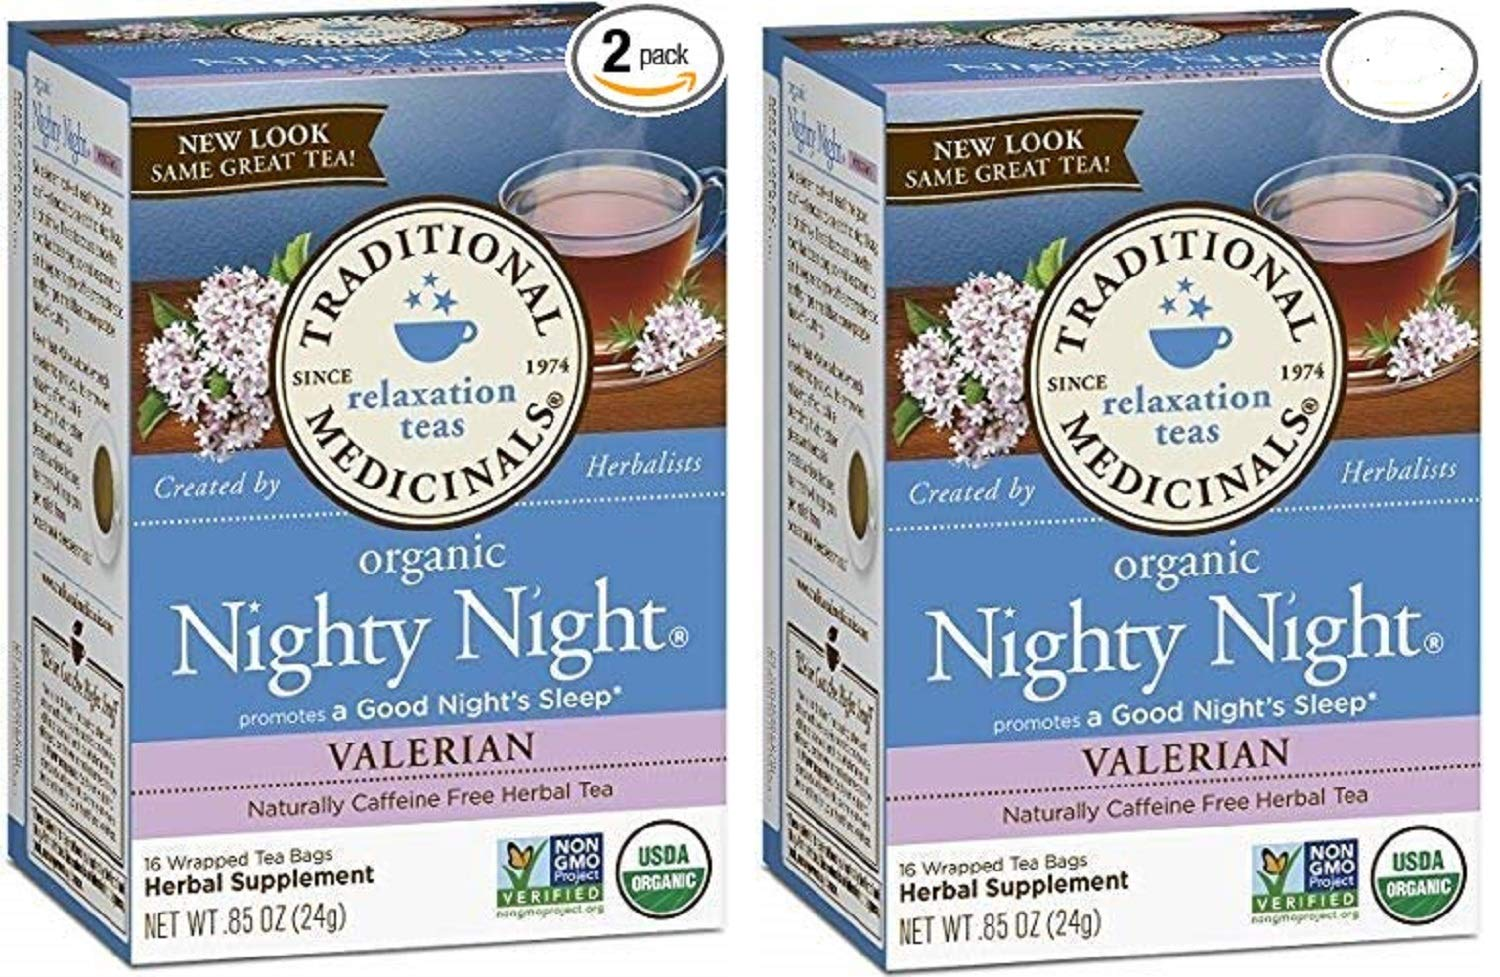 Amazon.com  Traditional Medicinals Nighty Night Valerian Organic Tea  16 Pack (Pack of 2)  Health   Personal Care 2760b1f05